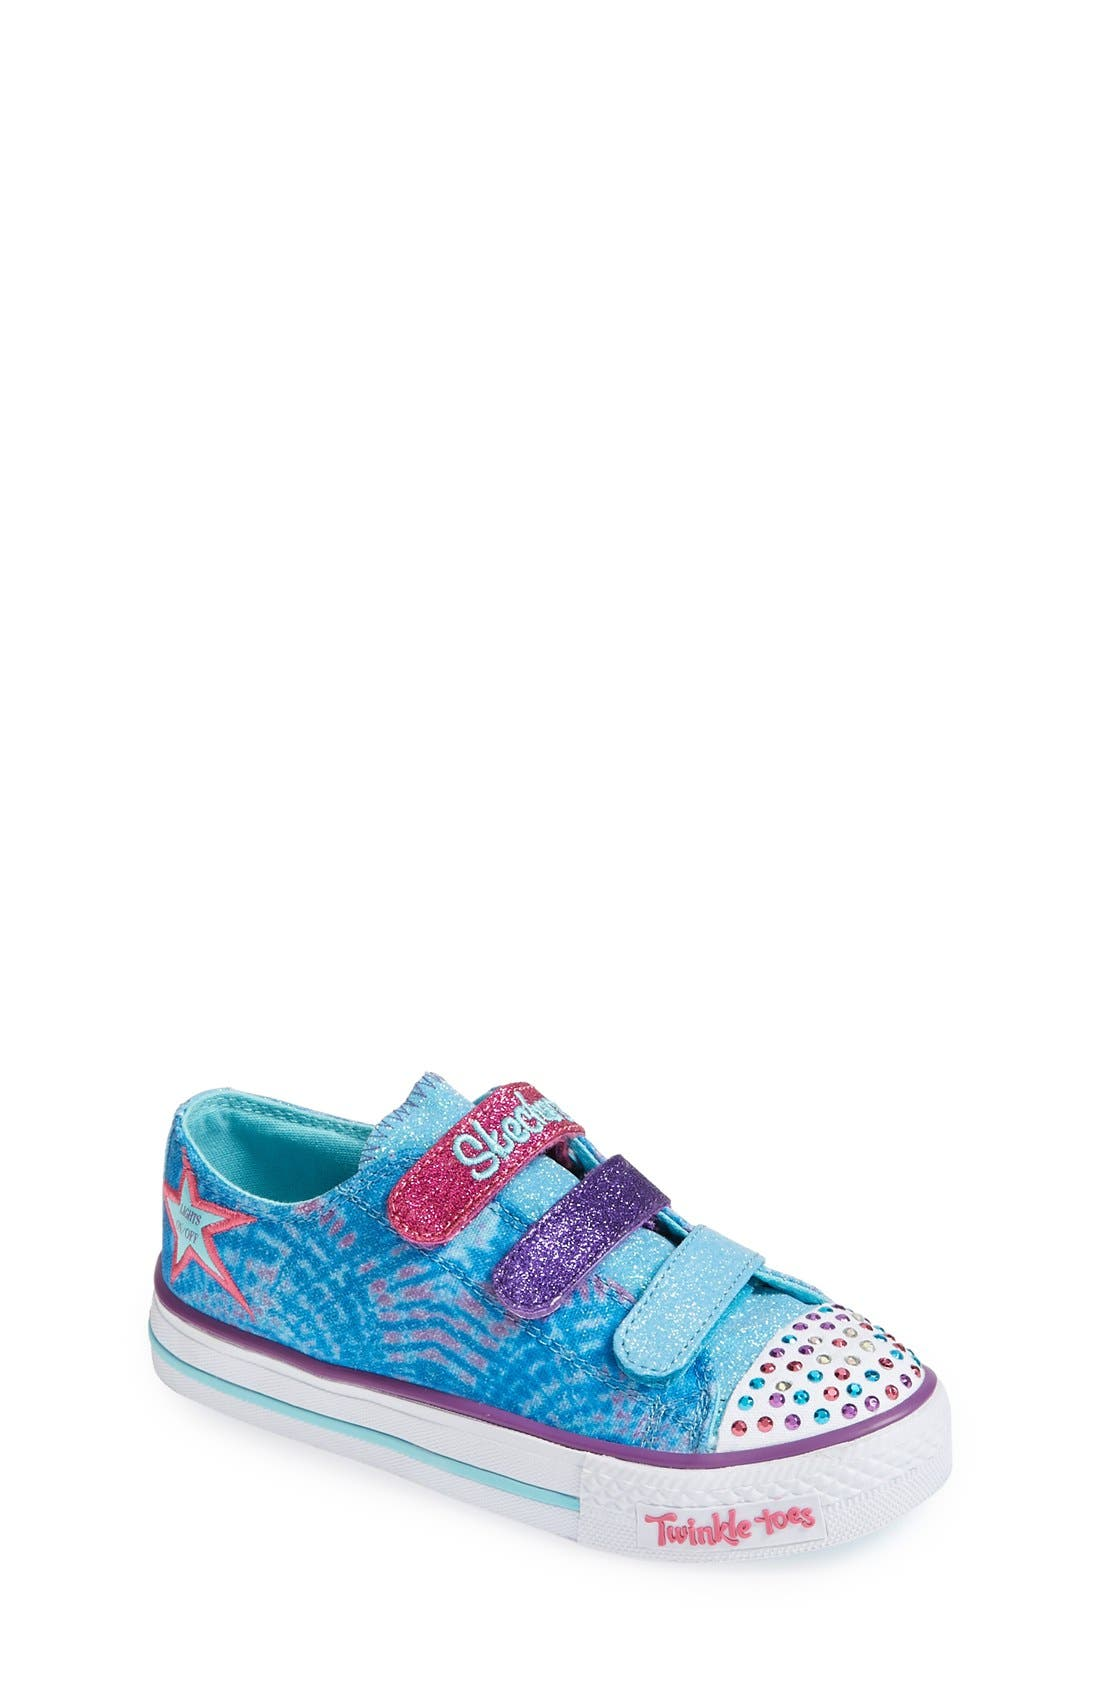 Main Image - SKECHERS 'Twinkle Toes' Light-Up Sneaker (Toddler & Little Kid)